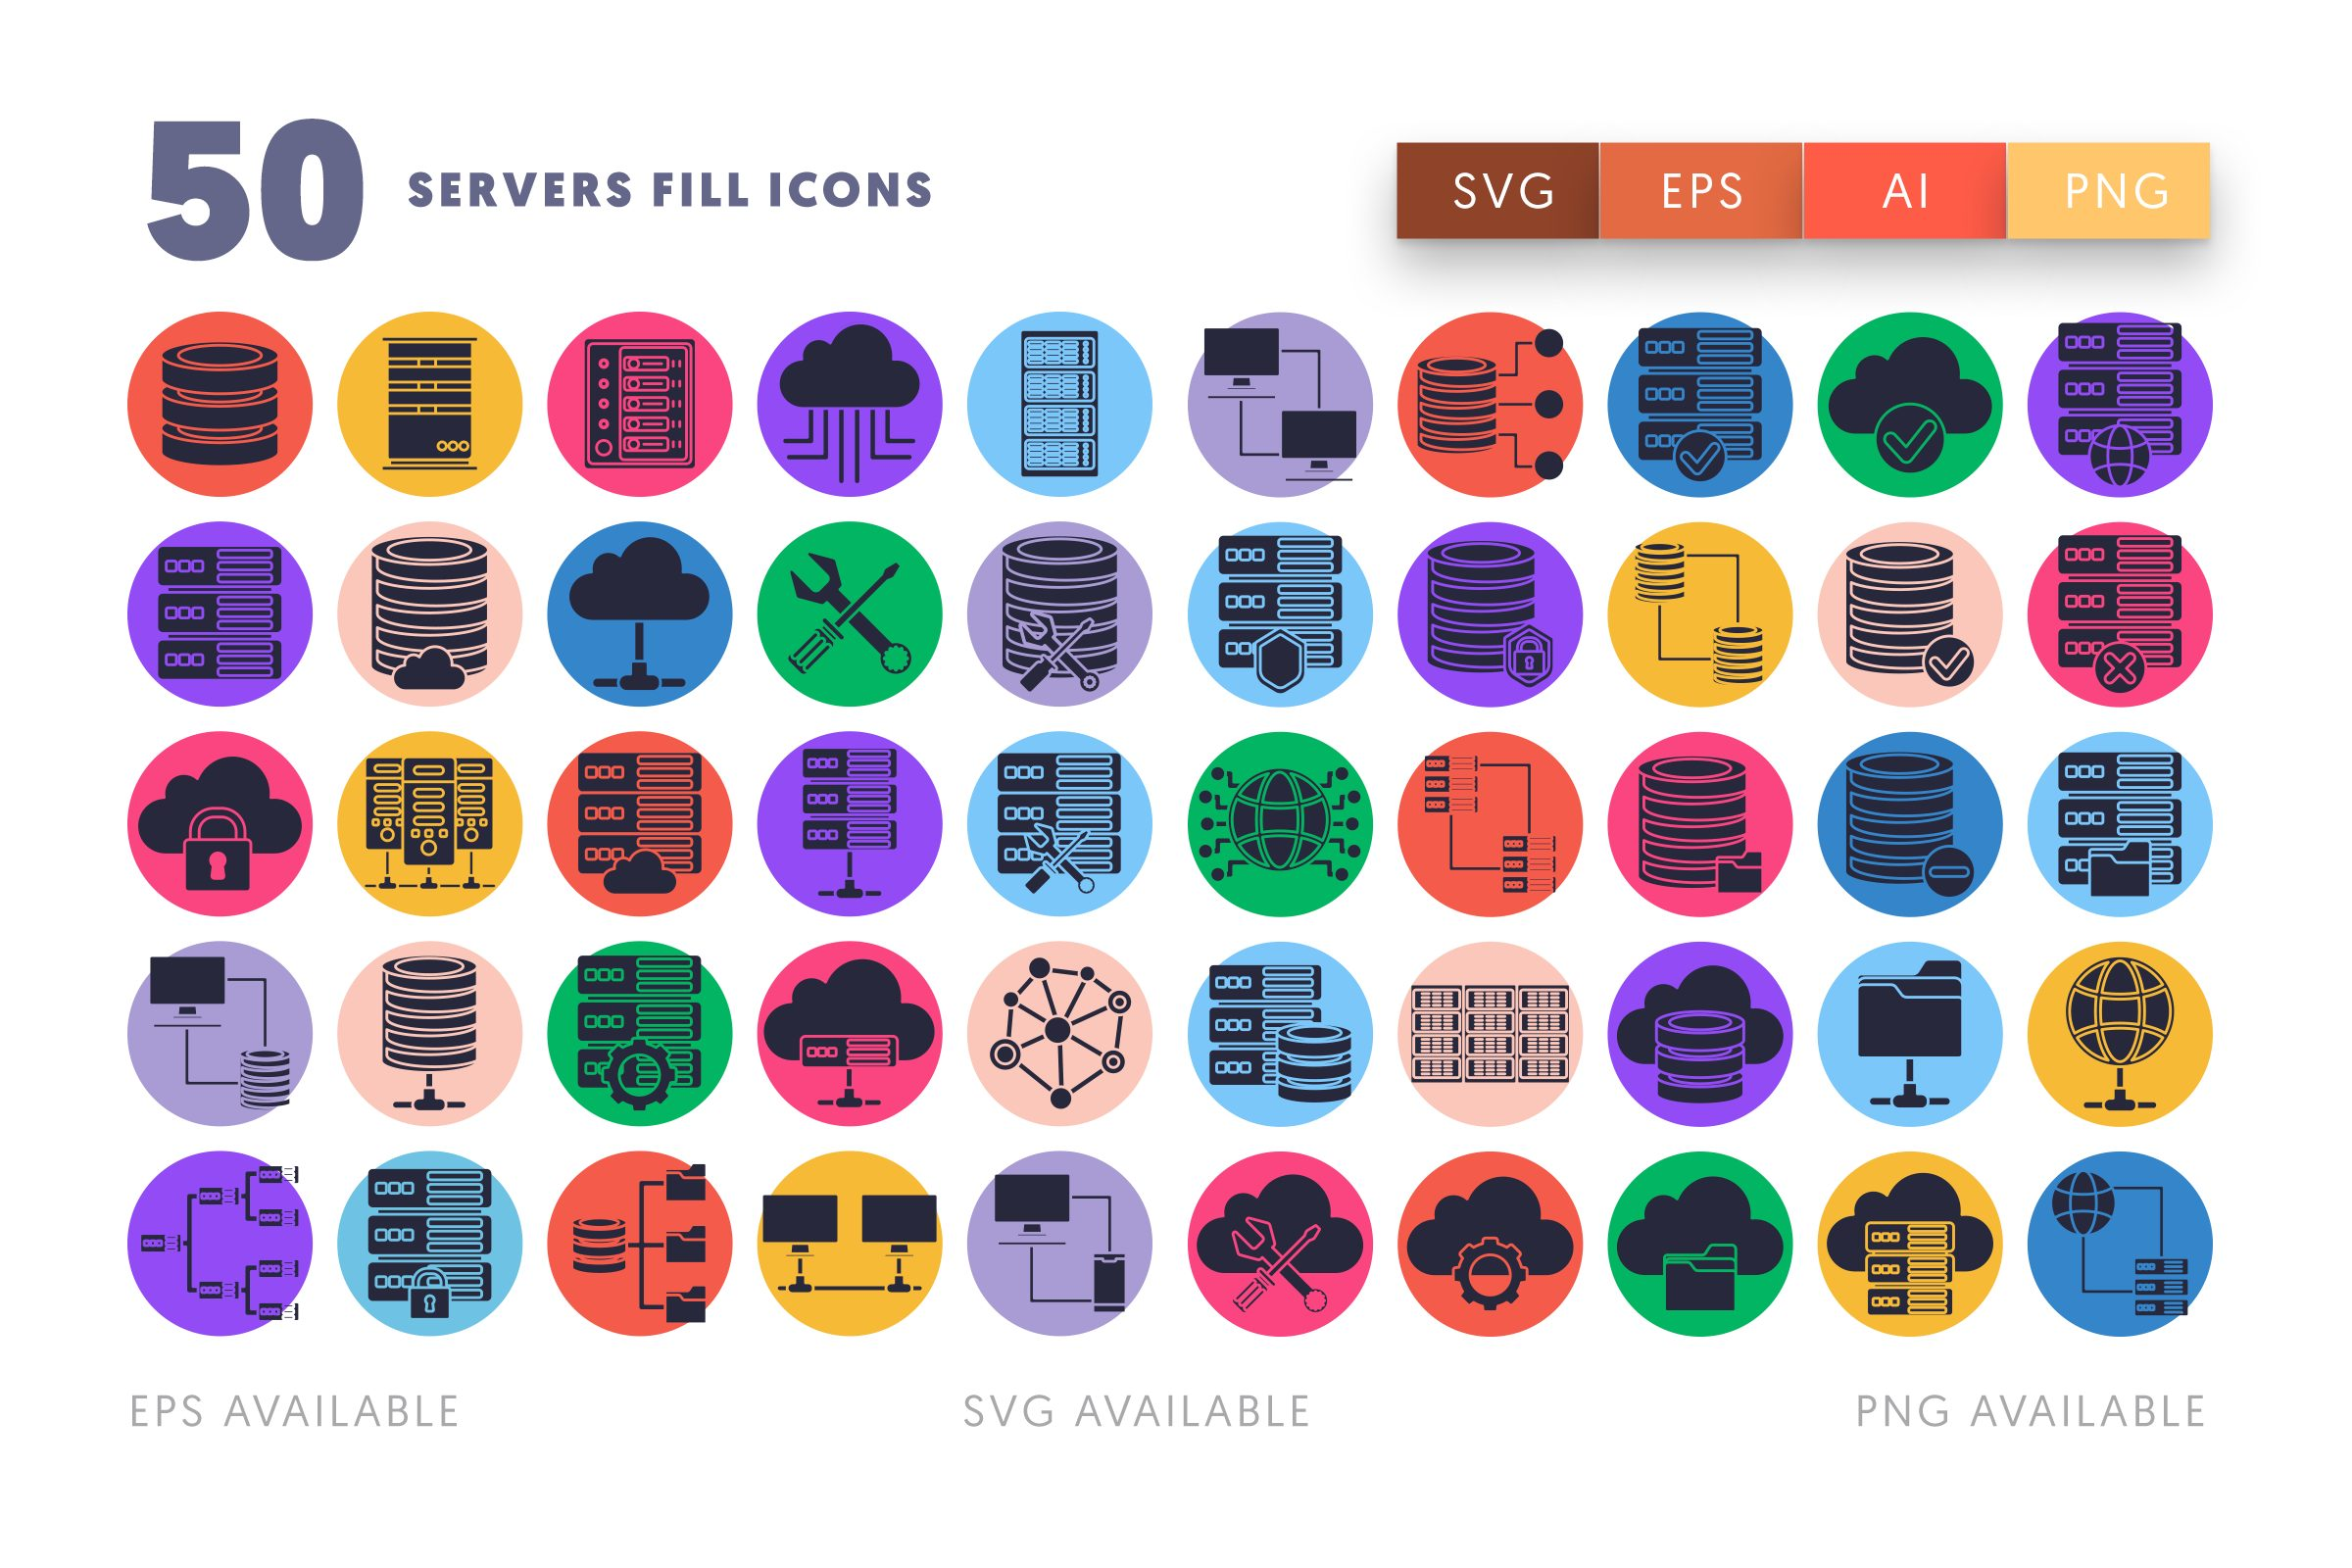 Servers Fill icons png/svg/eps